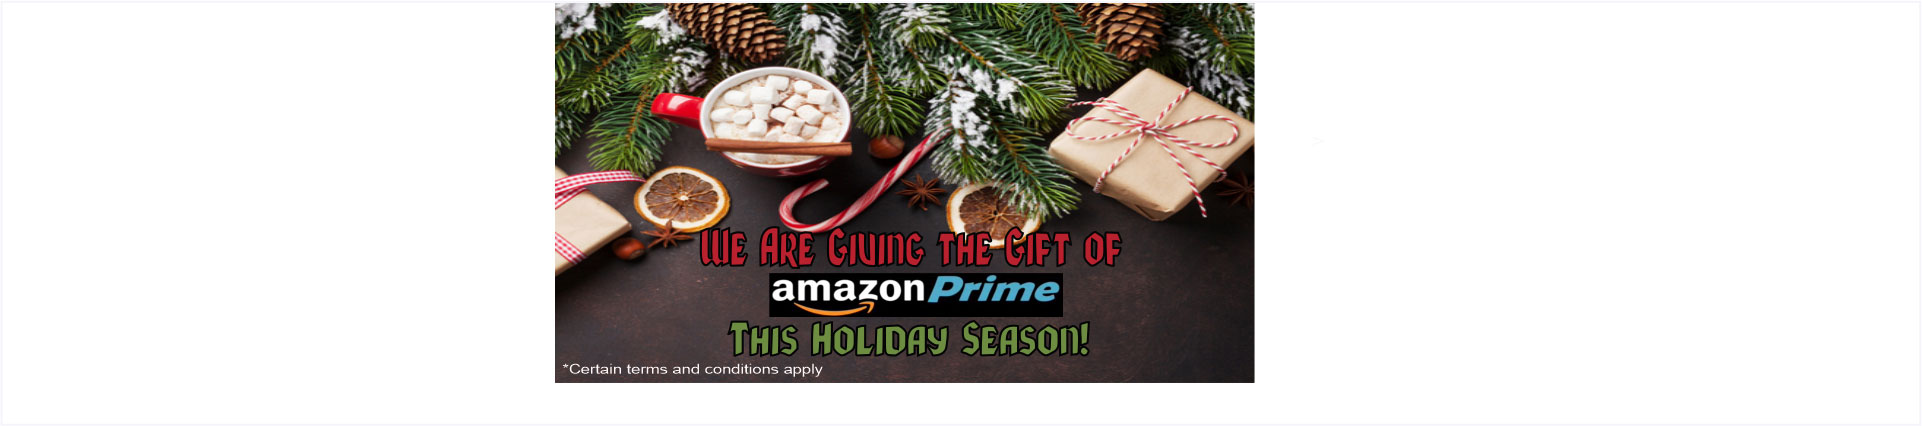 We are giving the gift of Amazon Prime this holiday season